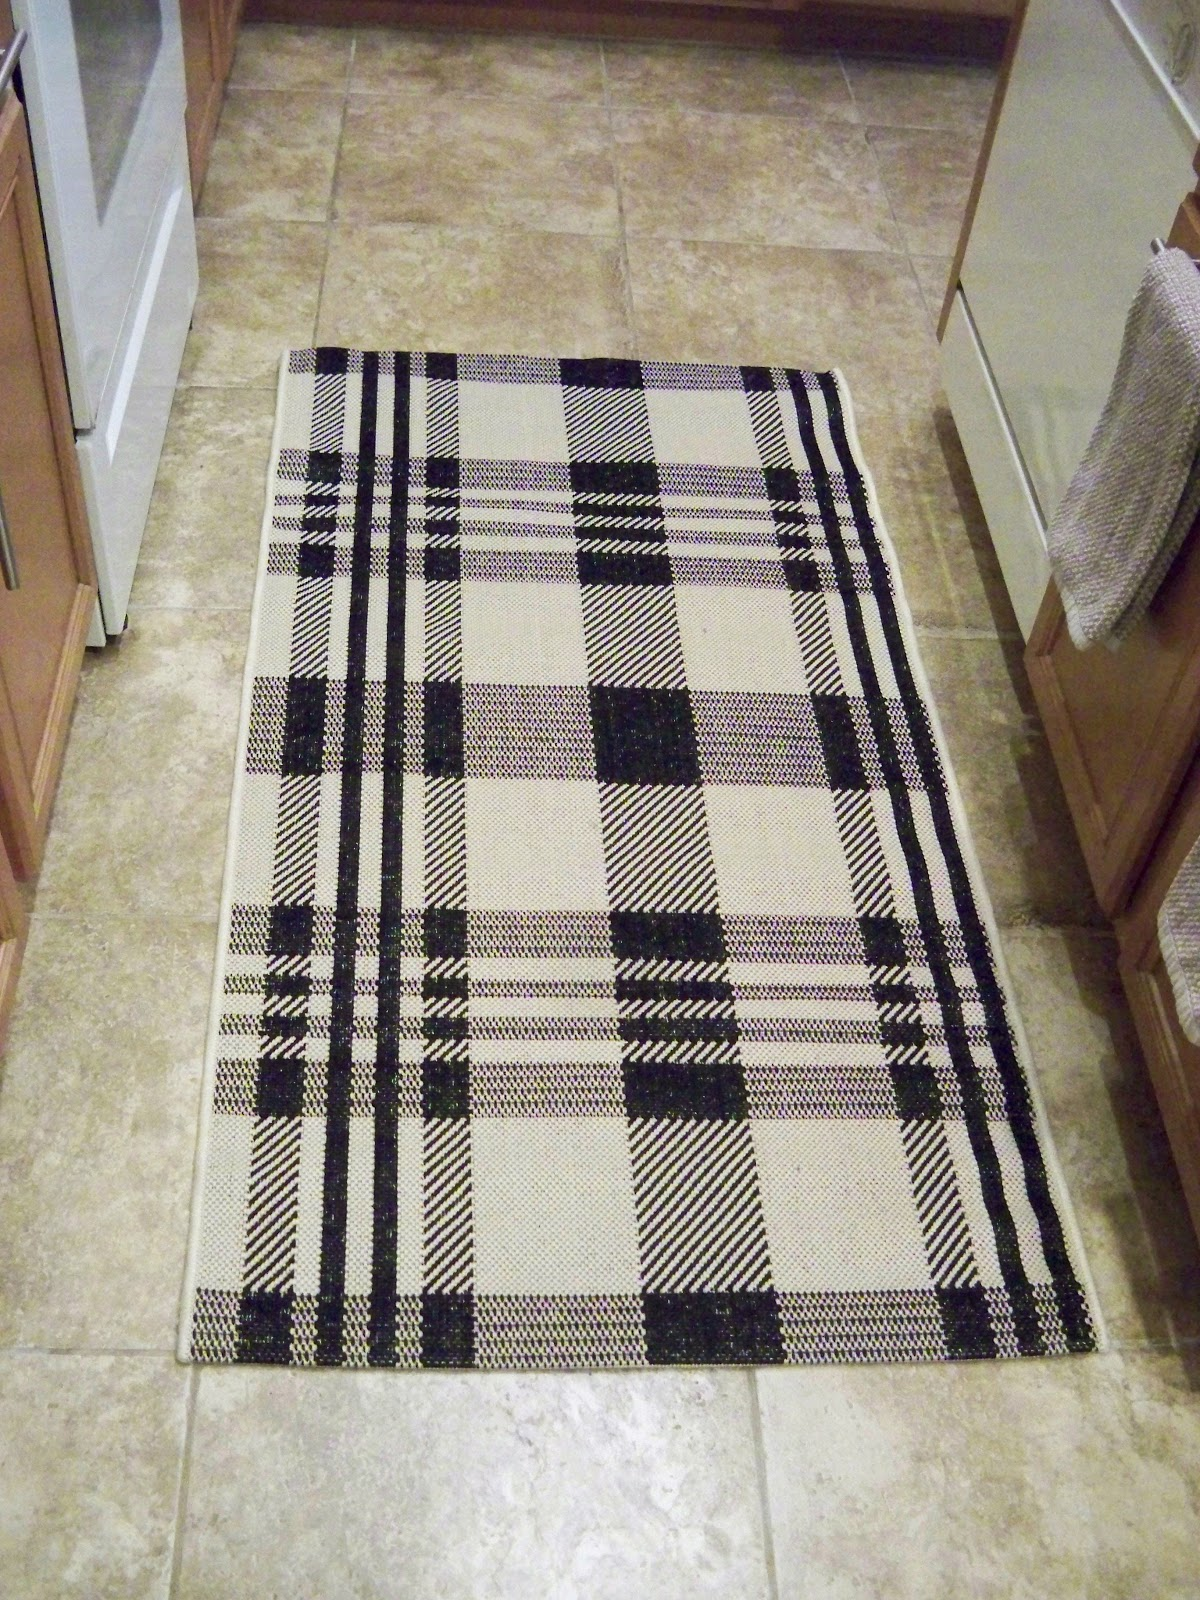 A Stroll Thru Life: A Dining Area Rug & One For The Kitchen